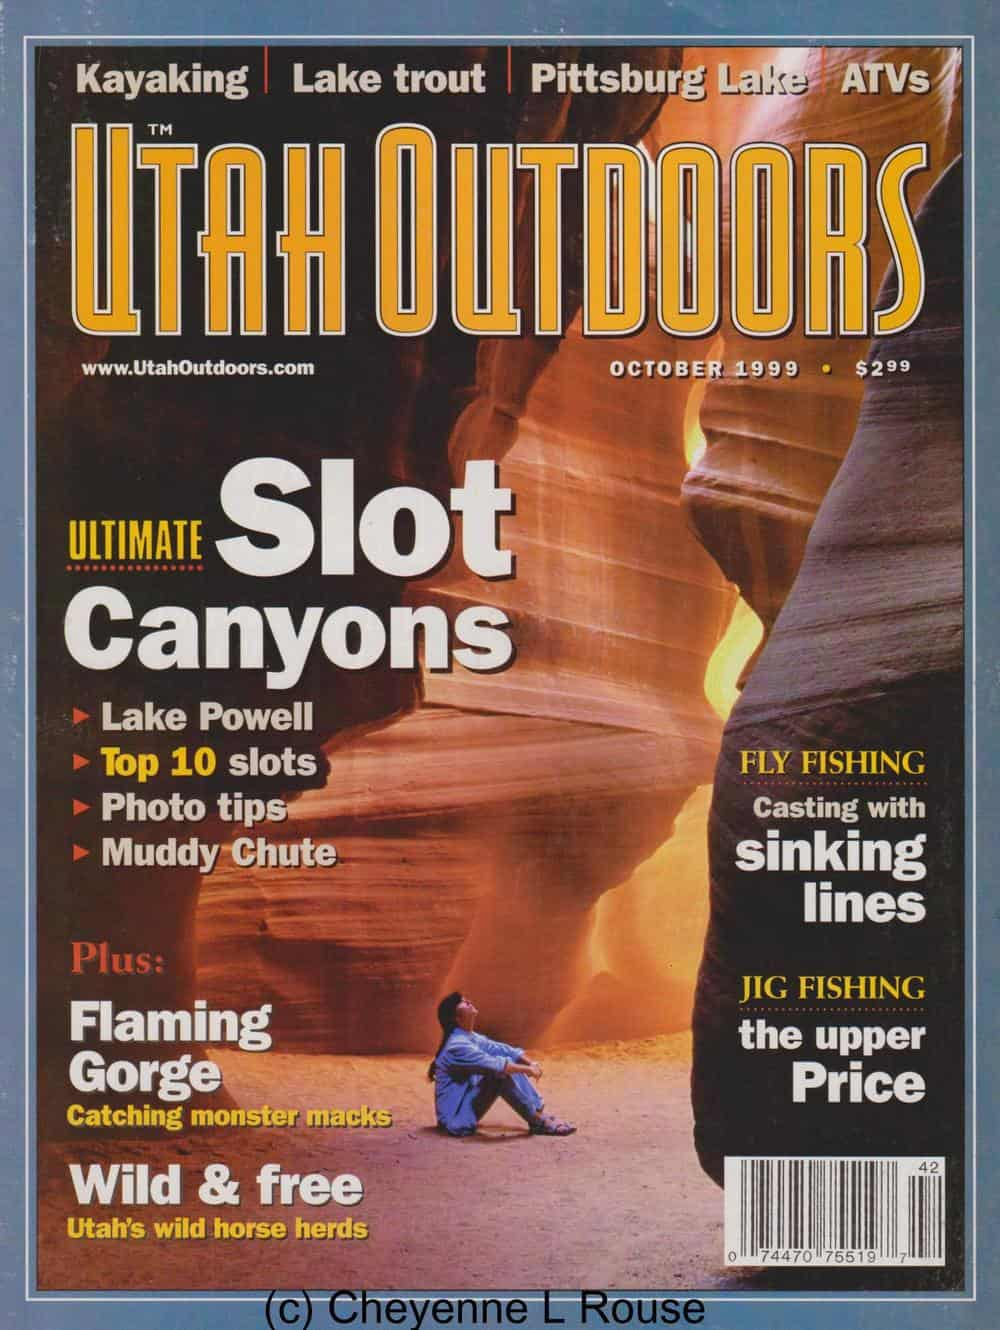 A cover photo similar to the one that lured me to Antelope Canyon